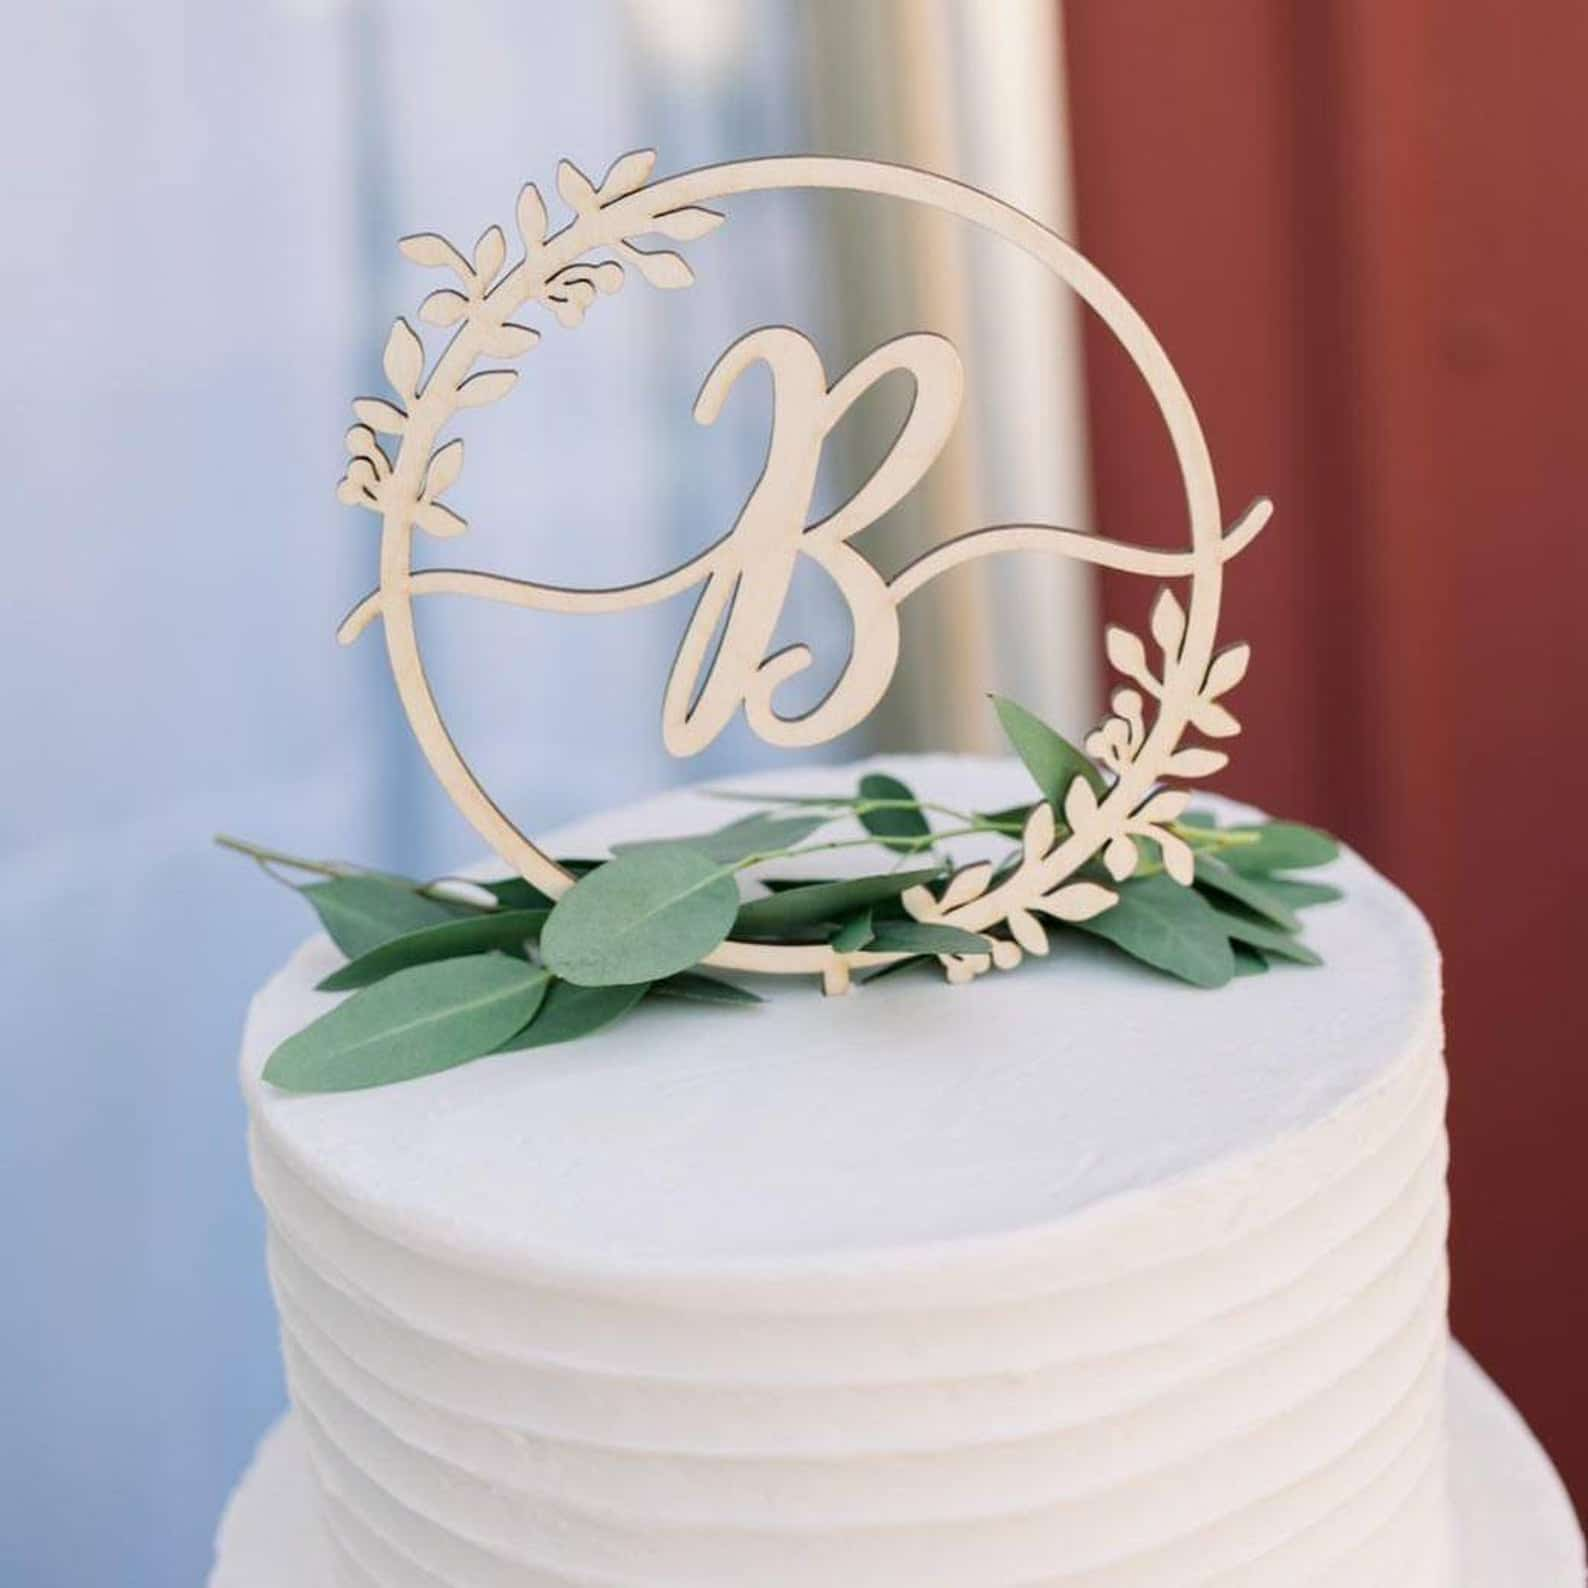 Rustic Monogram Cake Topper by Thistle and Lace